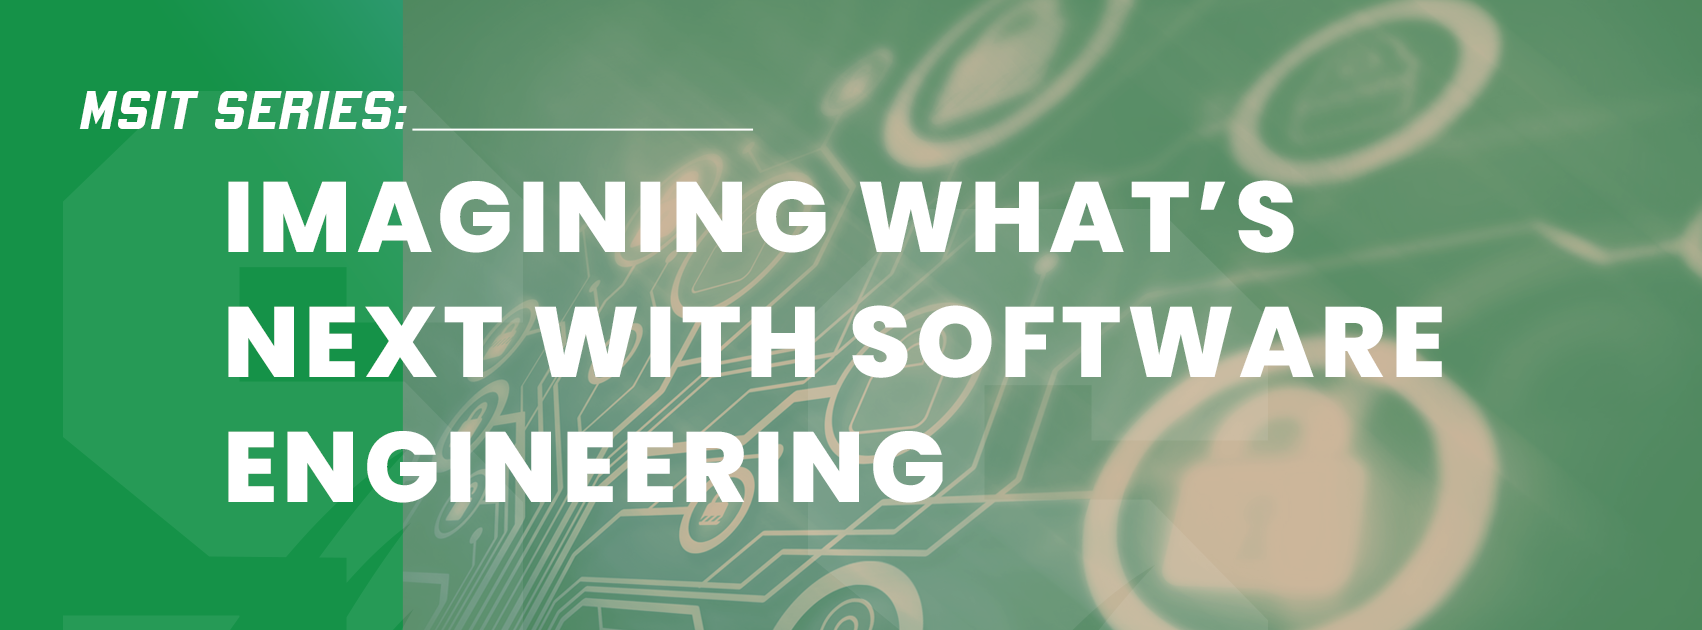 MSIT Series: Imagining What's Next With Software Engineering